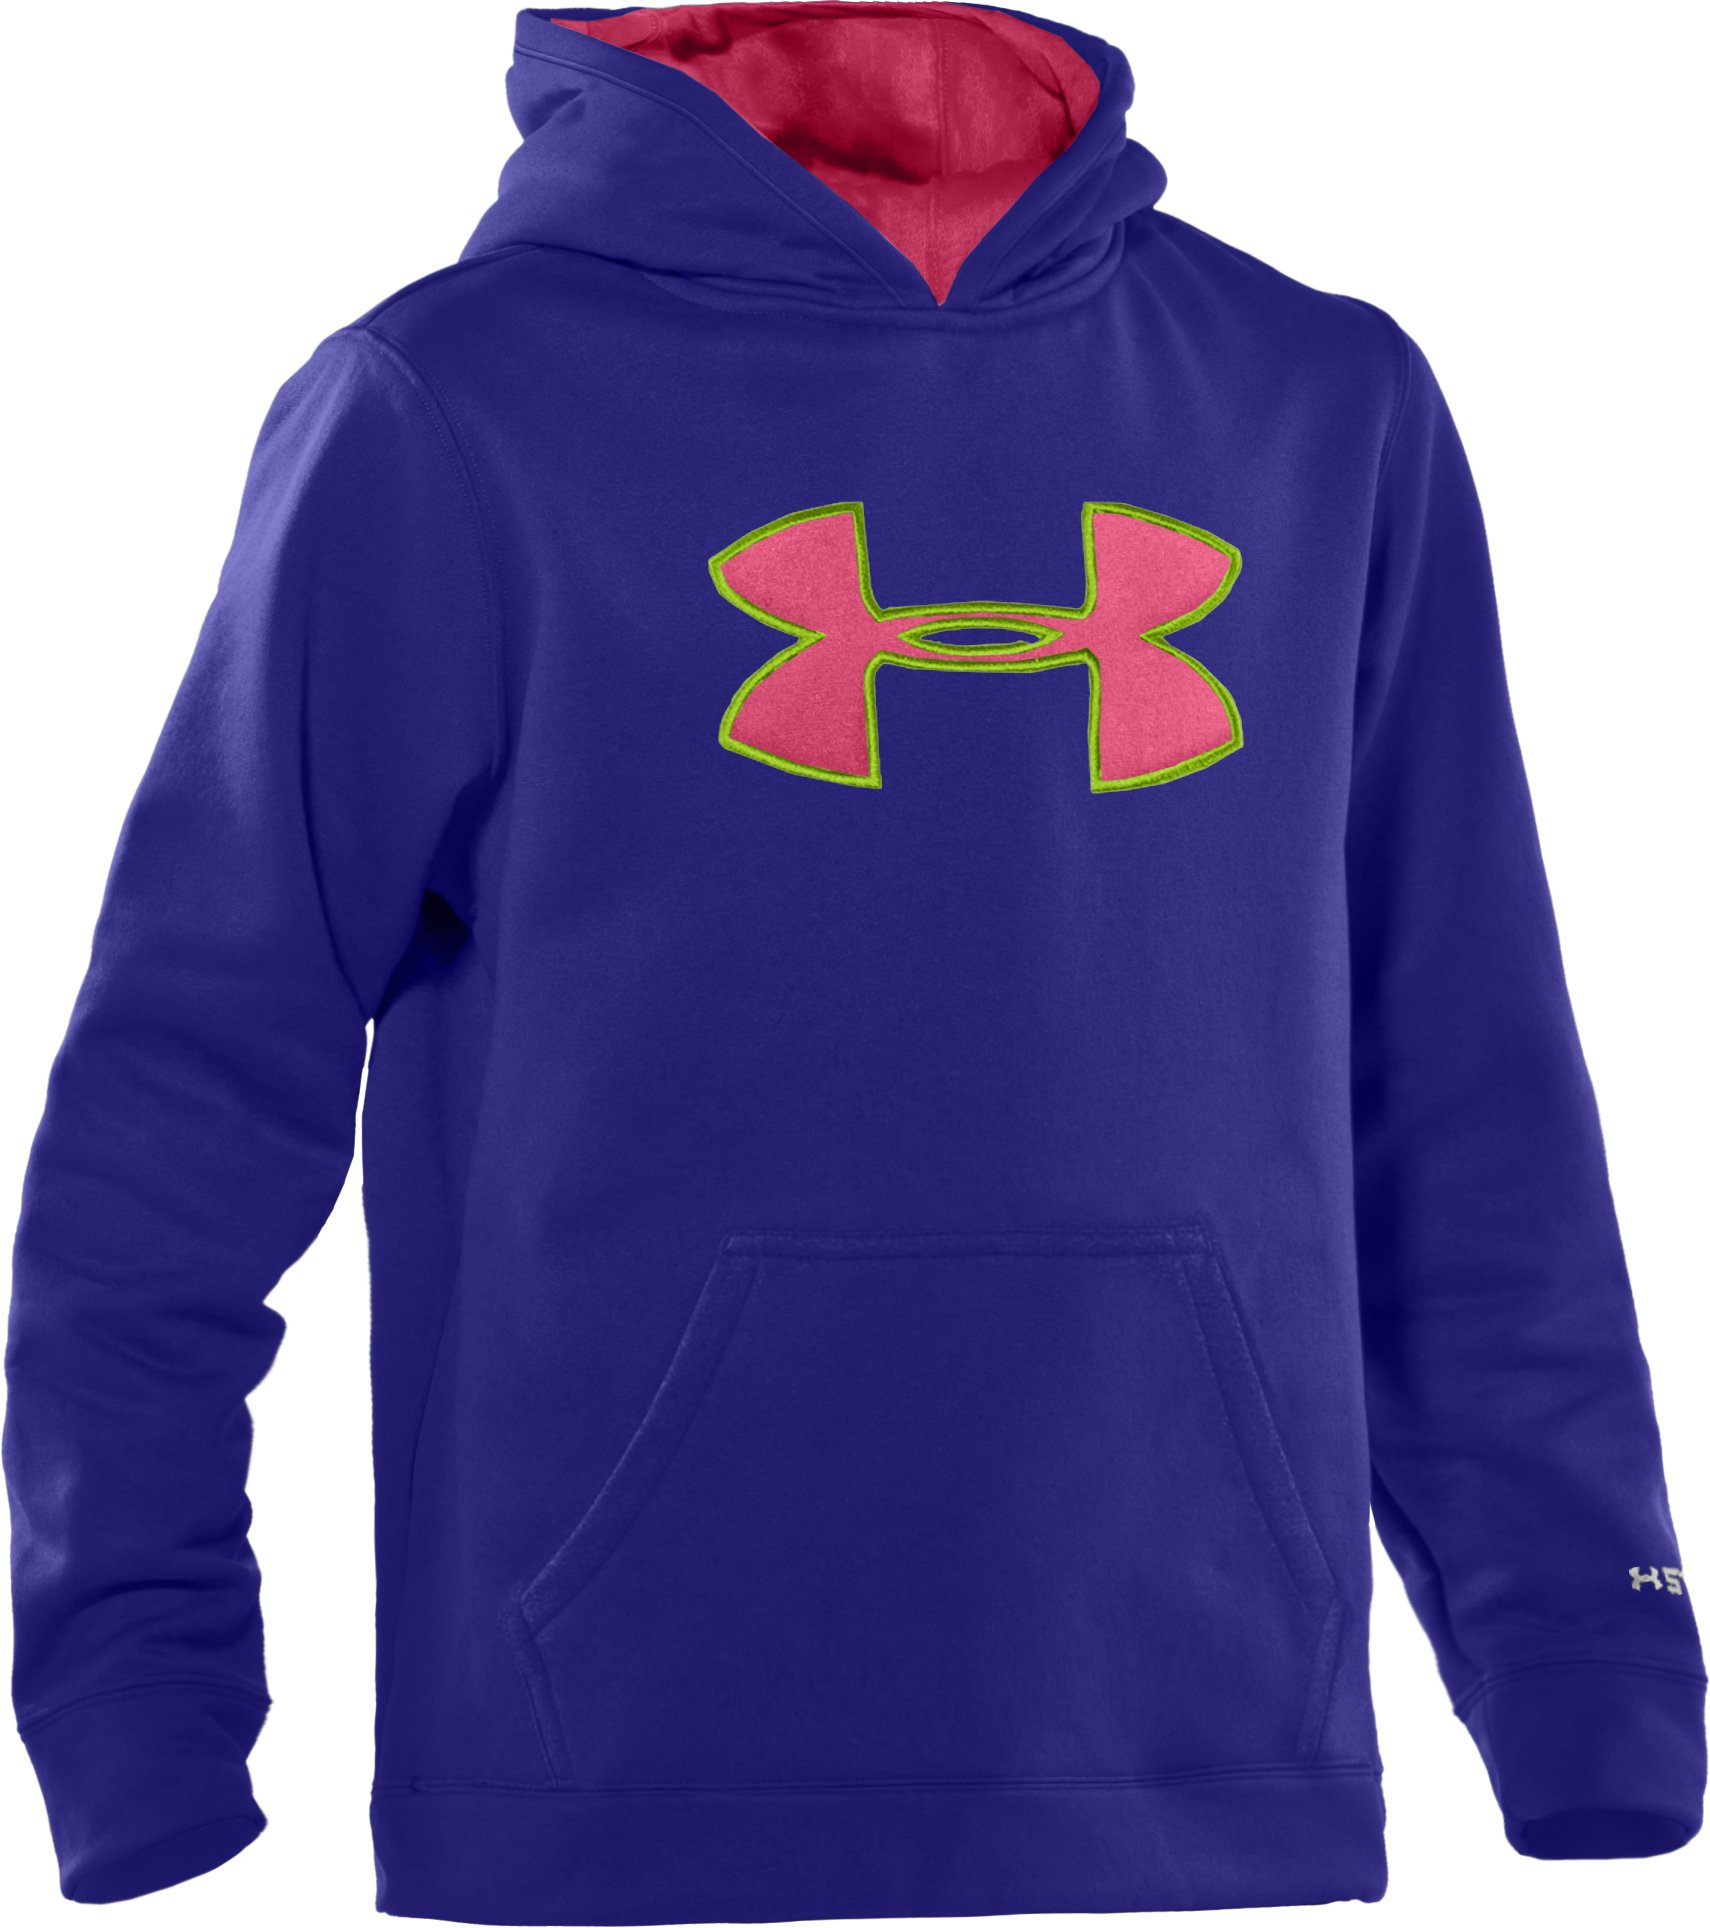 Girls' Armour® Fleece Storm Big Logo Hoodie, Caspian, zoomed image